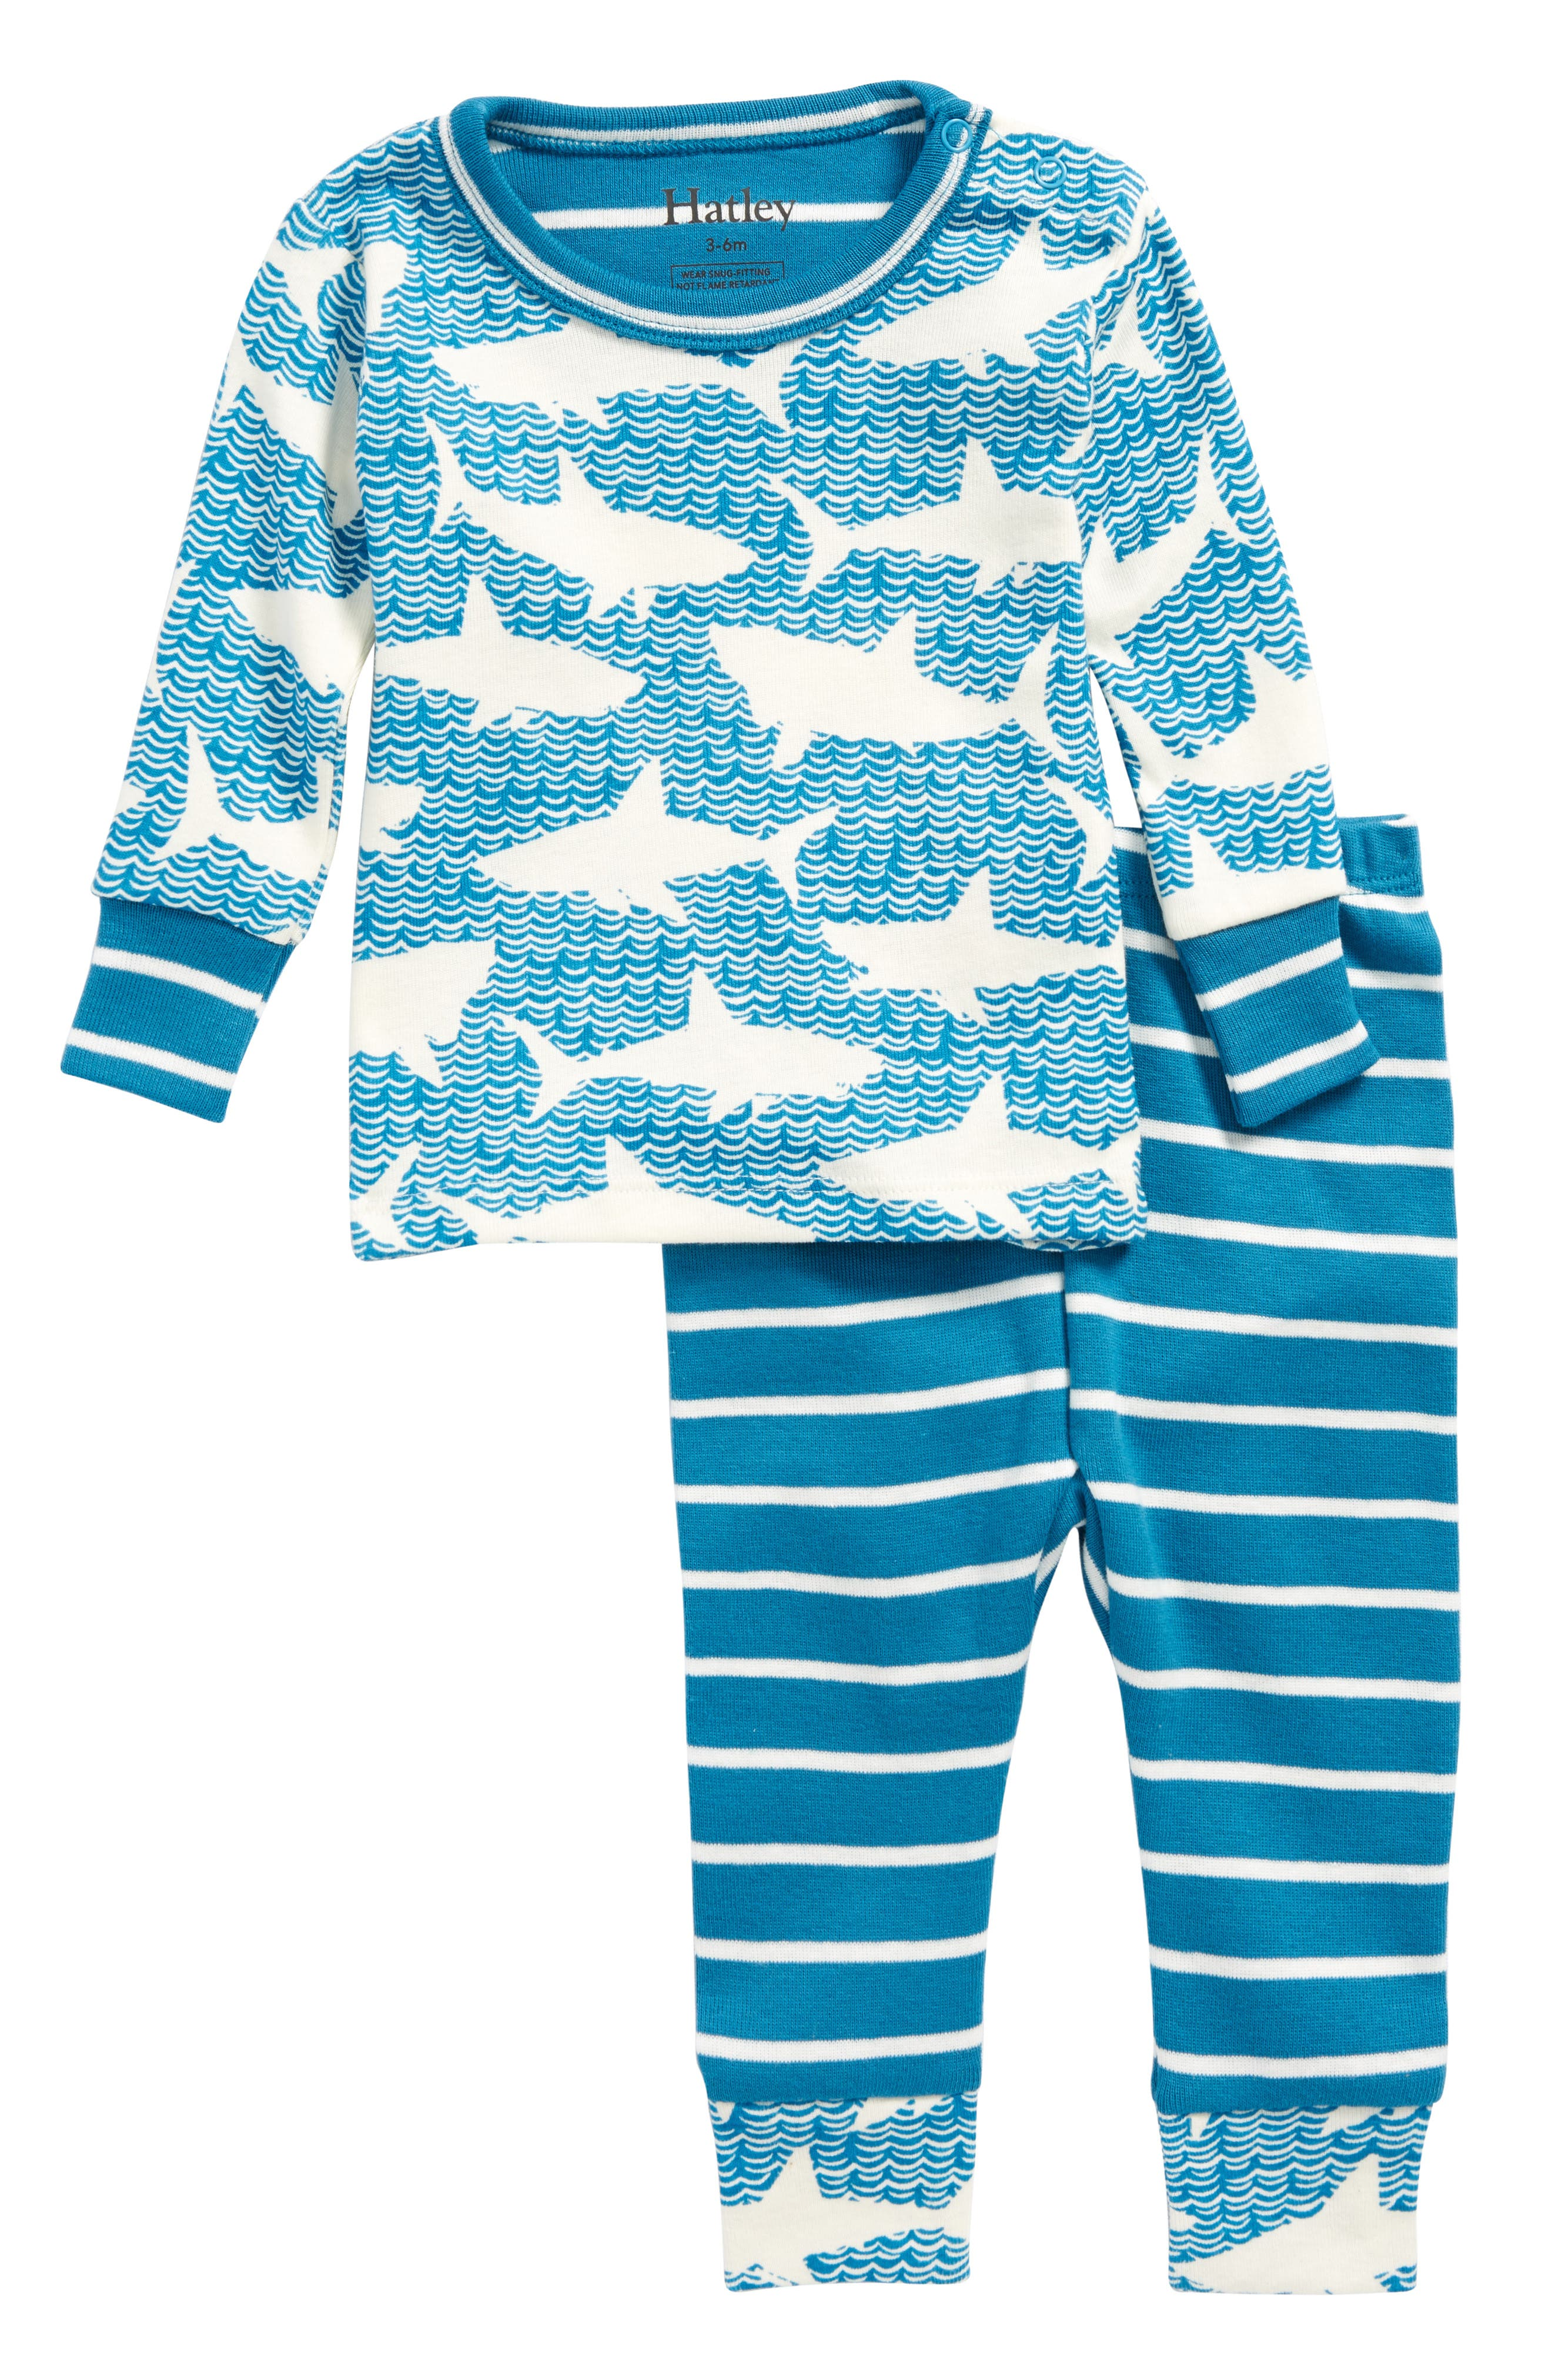 Shark Alley Organic Cotton Fitted Two-Piece Pajamas,                             Alternate thumbnail 2, color,                             Shark Alley